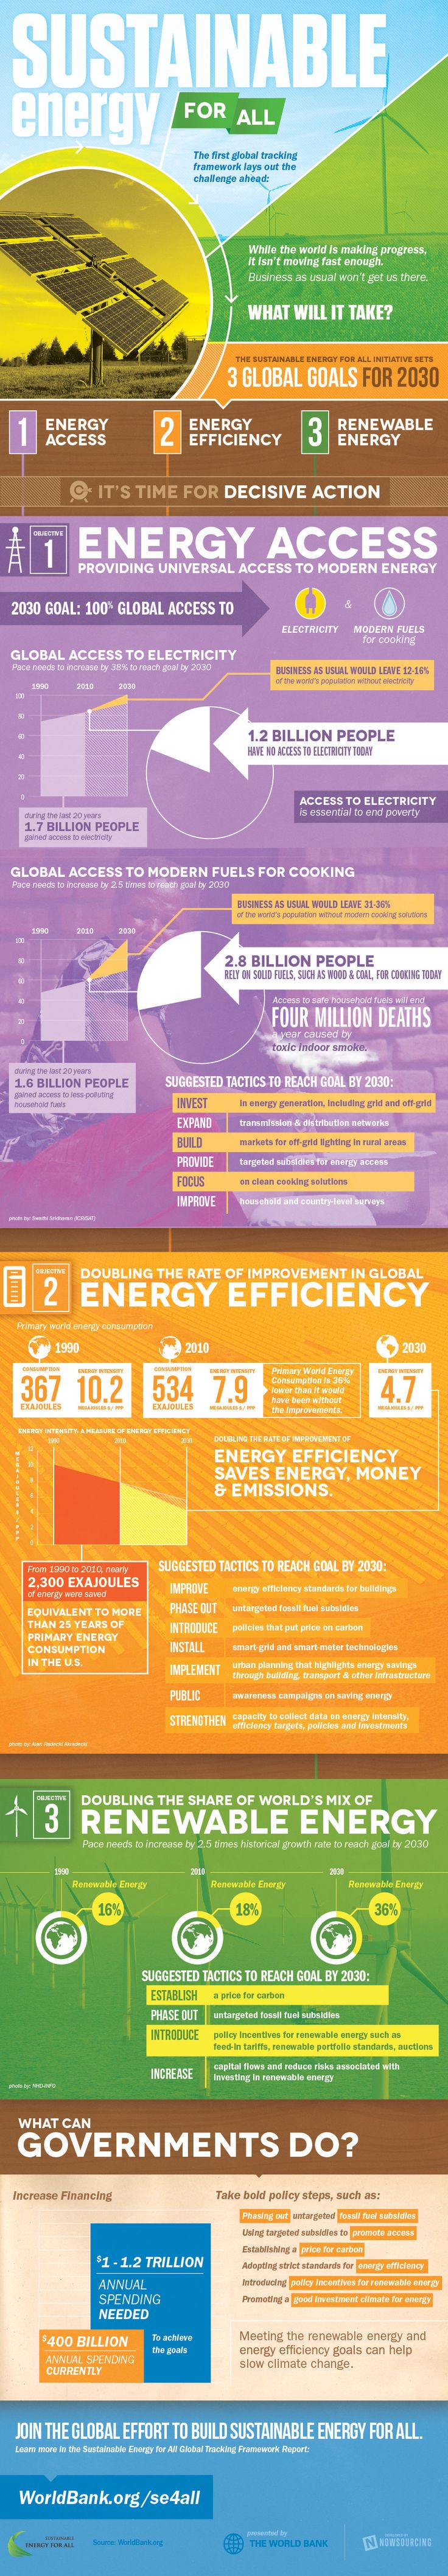 Sustainable Energy for All #EarthDayHyattRegencyMonterey